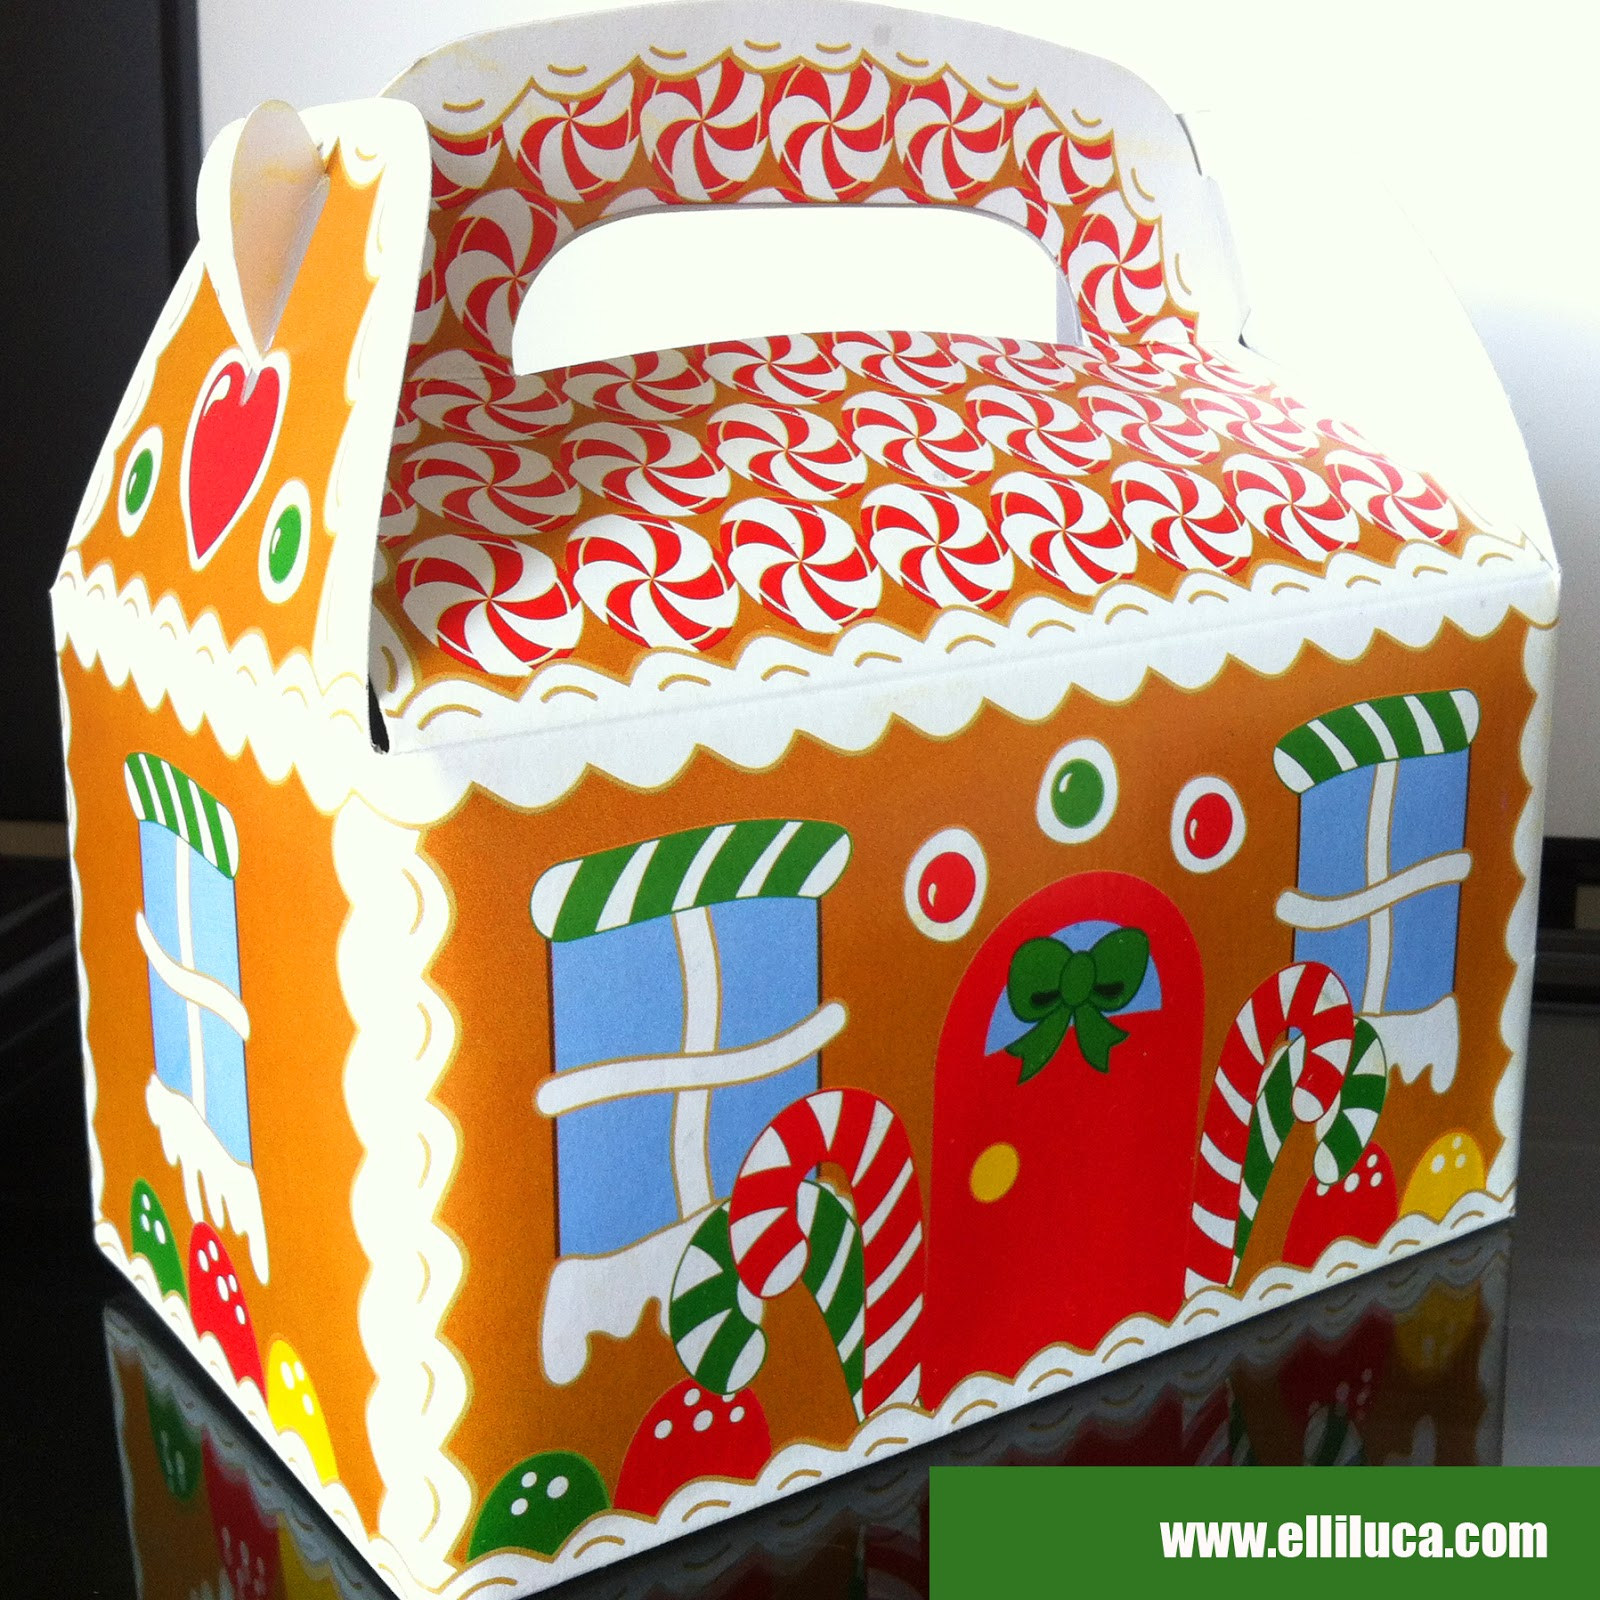 ... Elle's Kitchen): ※ New in Store - Gingerbread House Gift Boxes